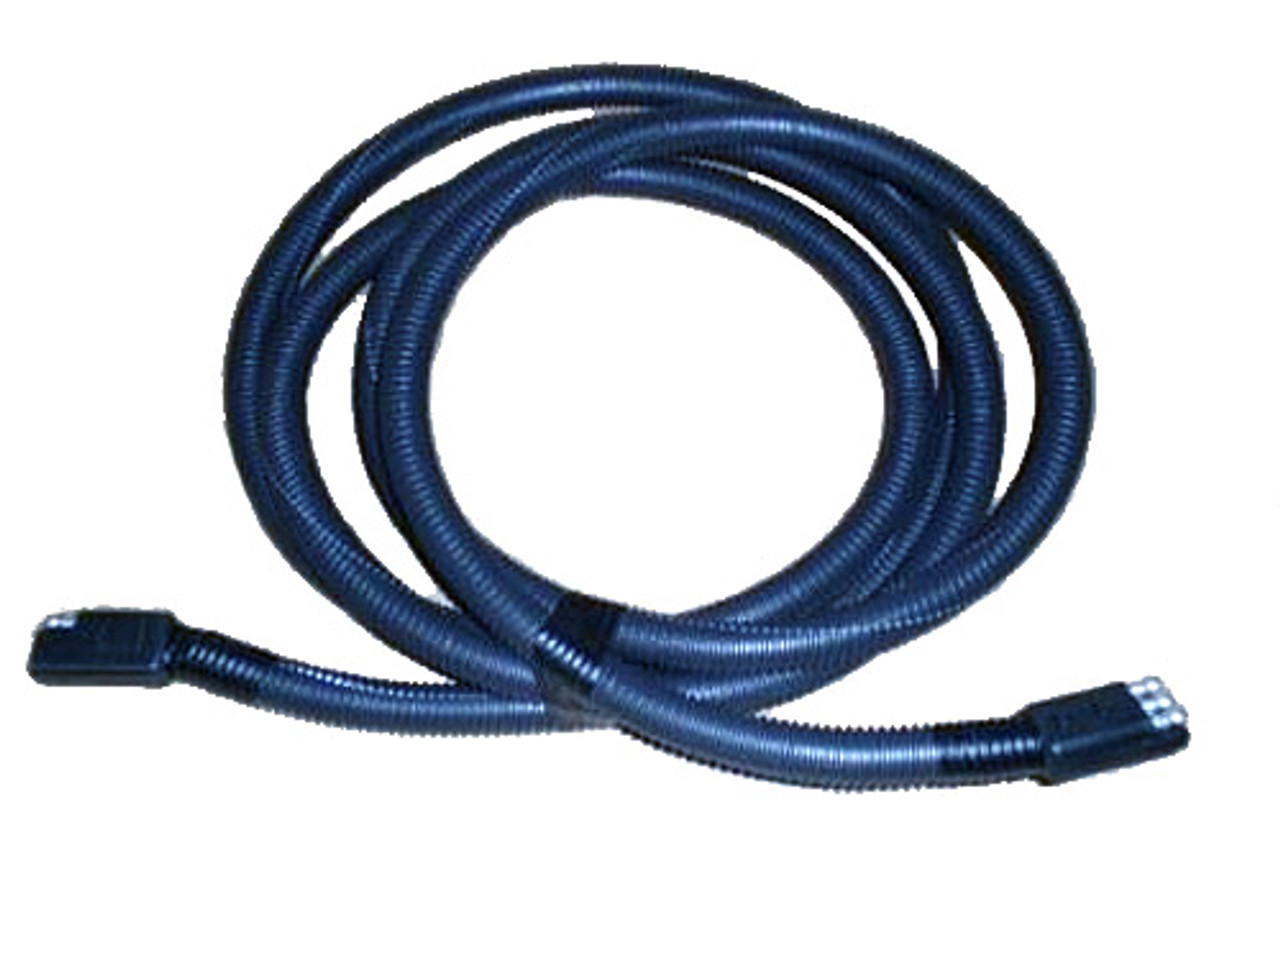 Master Spa - X551177 - 10 Foot Extension For Exerswim - Top View